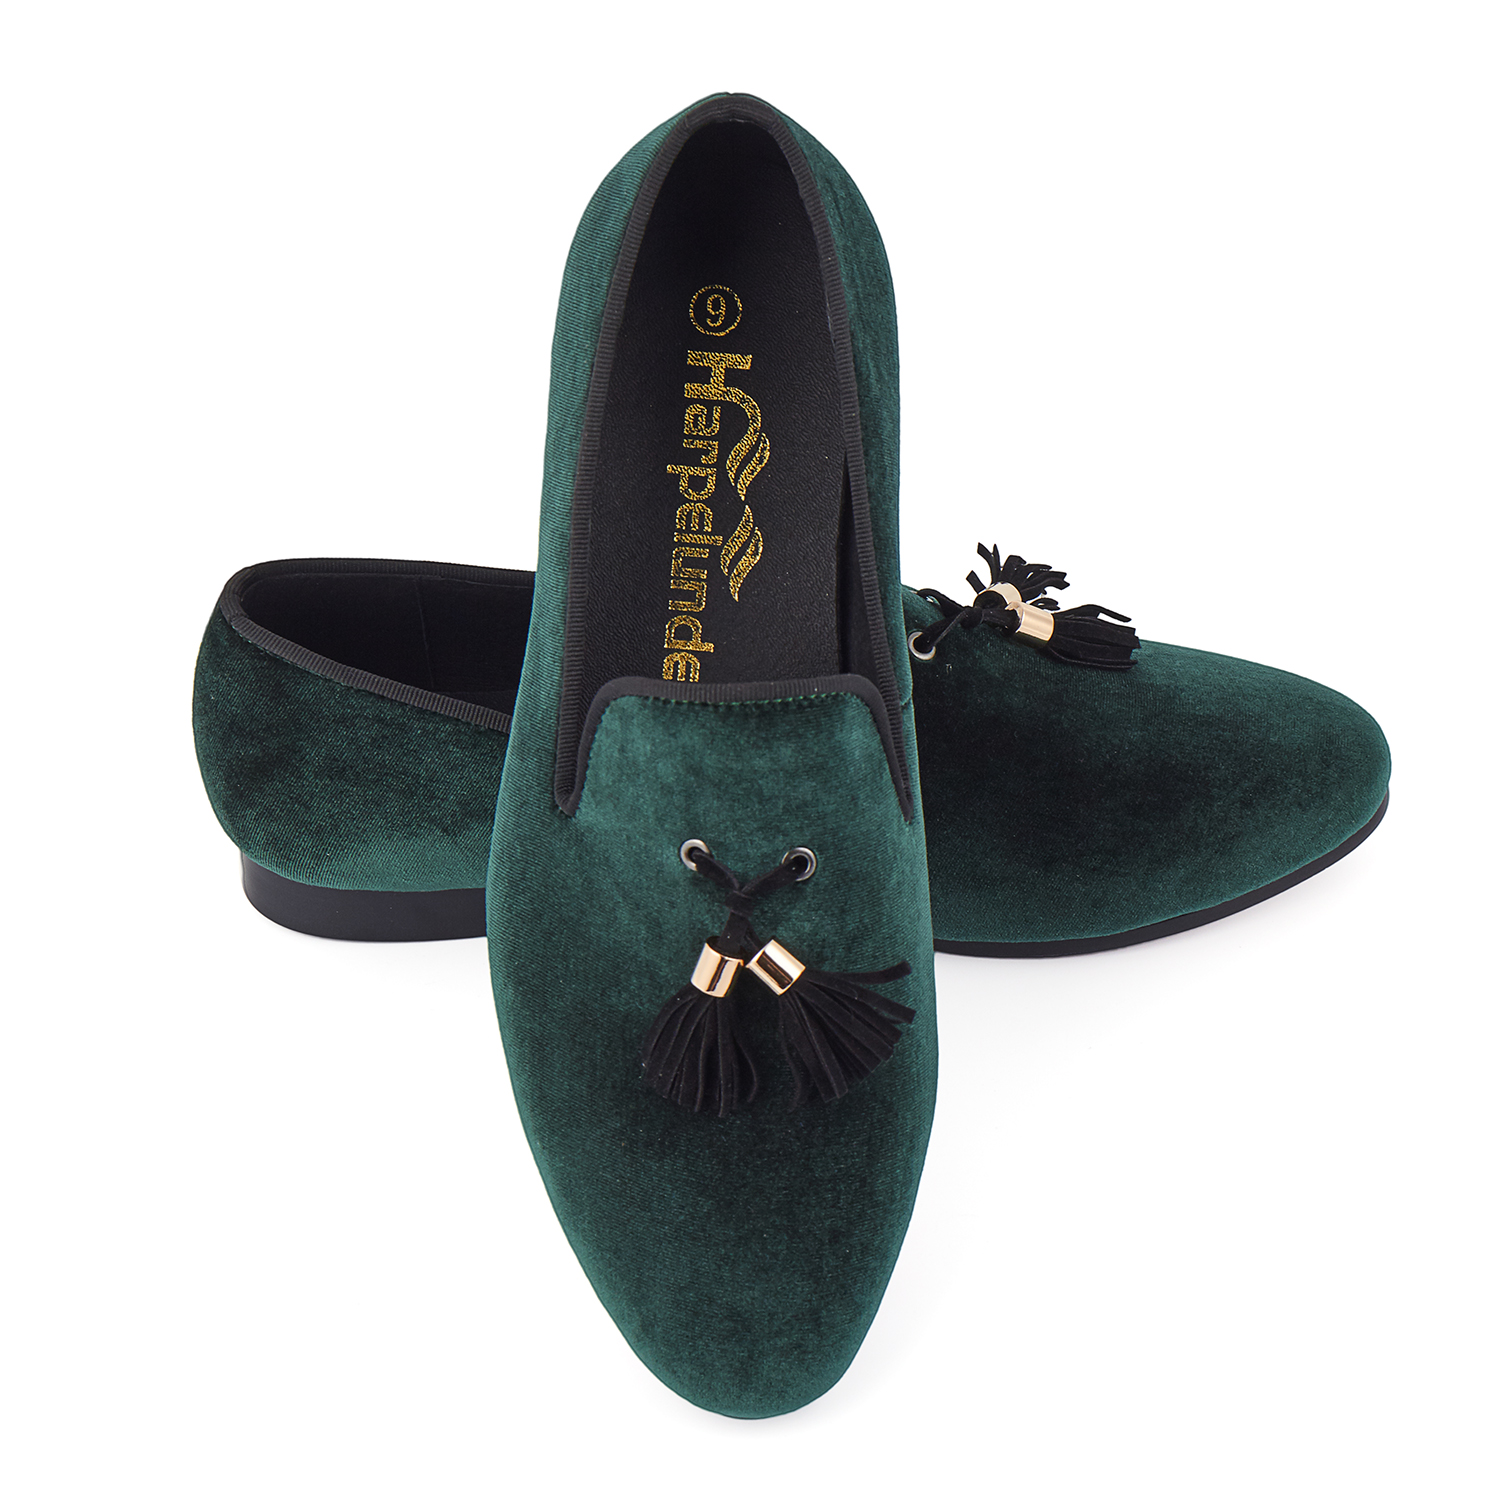 Harpelunde offre spéciale hommes chaussures vert velours mocassins taille 6-14